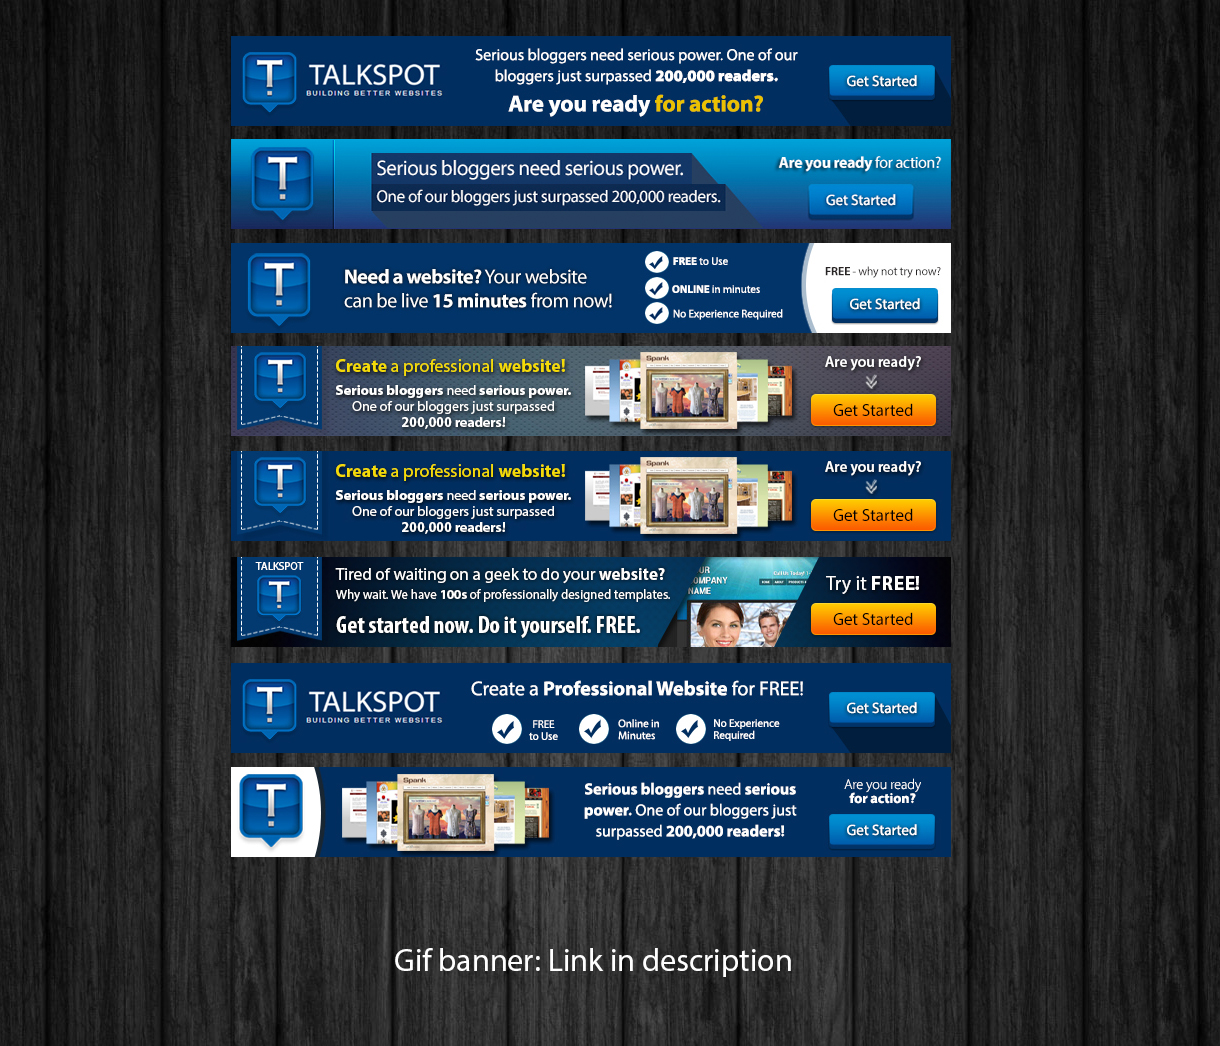 Credit card banner ad design for talkspot by travelfreak banner ad design by travelfreak for talkspot design 3610274 solutioingenieria Image collections